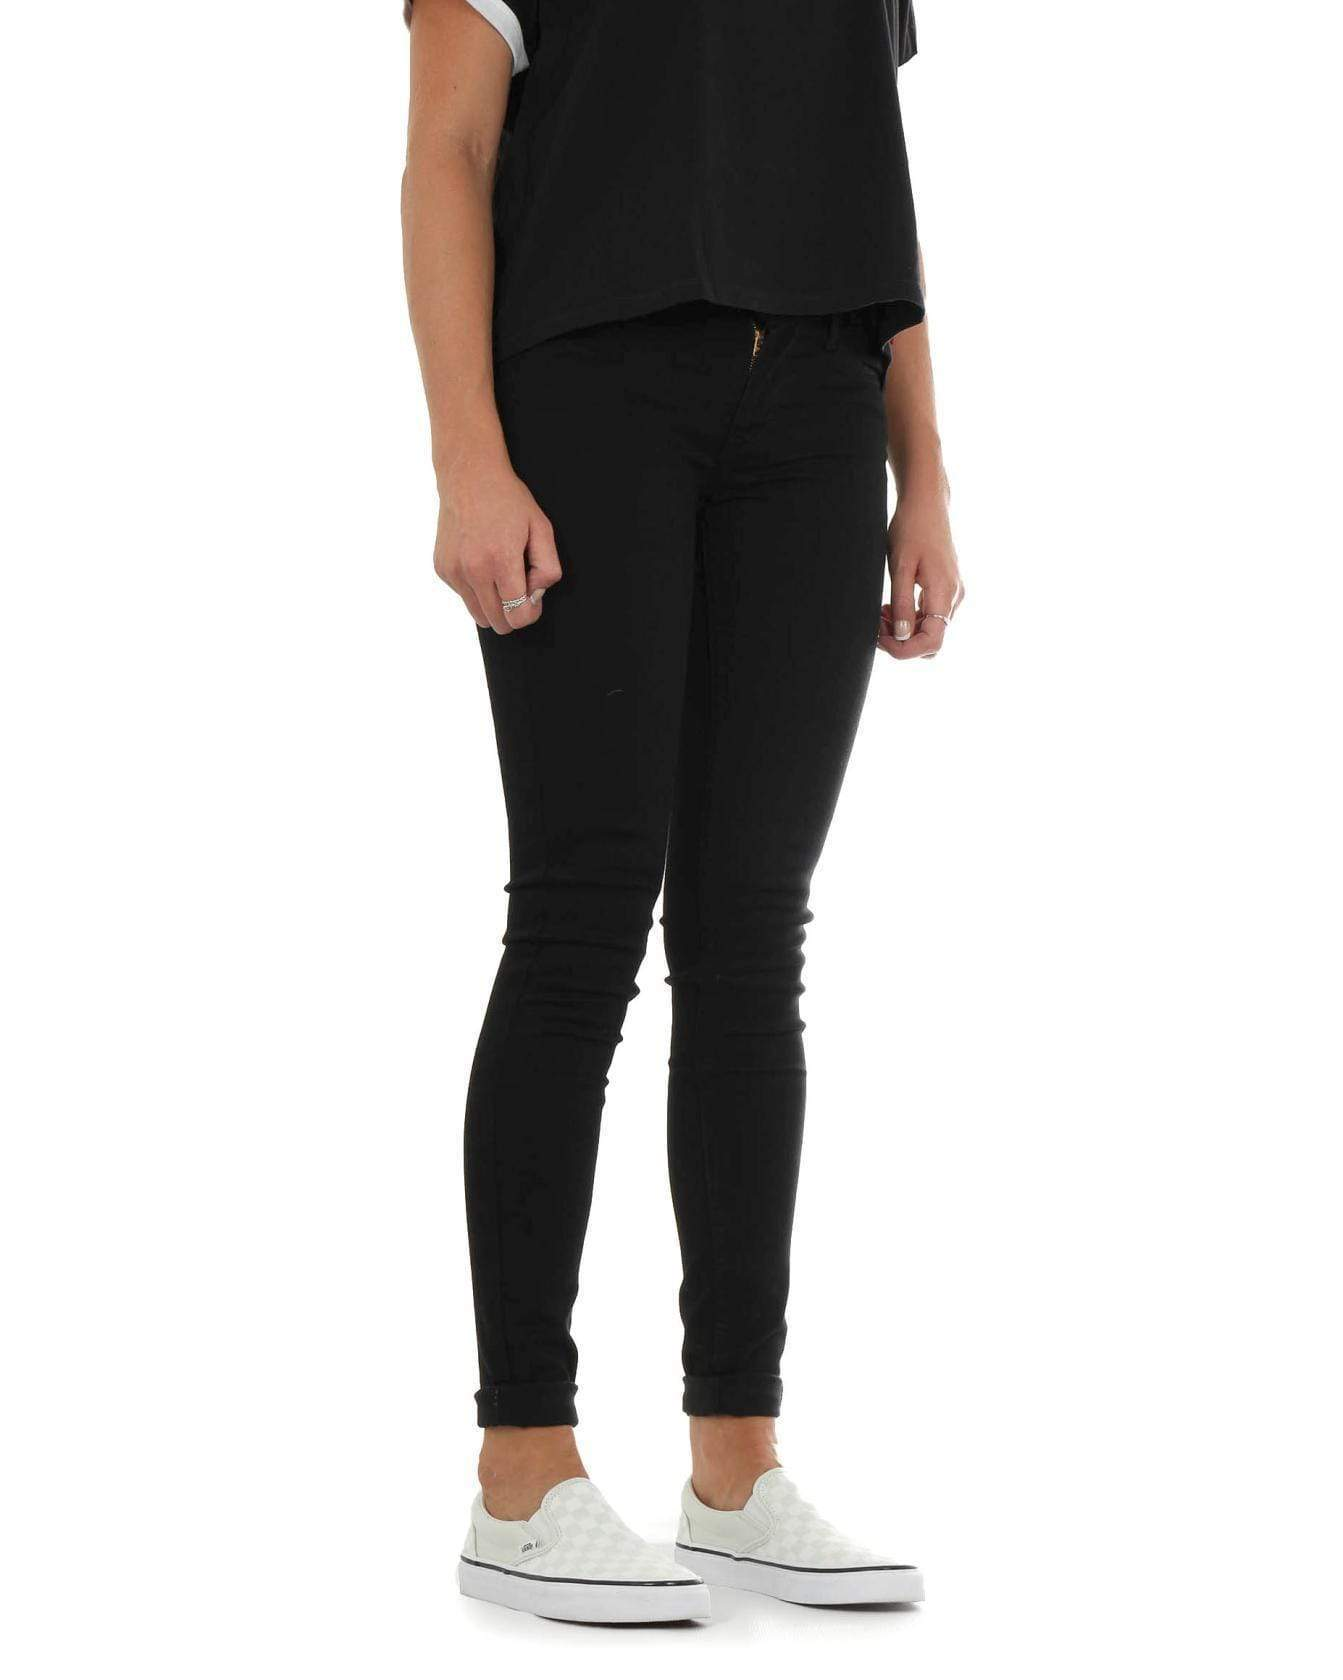 Levi's® Womens 710 Innovation Super Skinny Jeans - Black Galaxy W26 L28 17780003926XS 5400599174406 Levi's® Jeans Levis Ladies 710 Innovation Super Skinny Jeans - Black Galaxy - Jeans and Street Fashion from Jeanstore